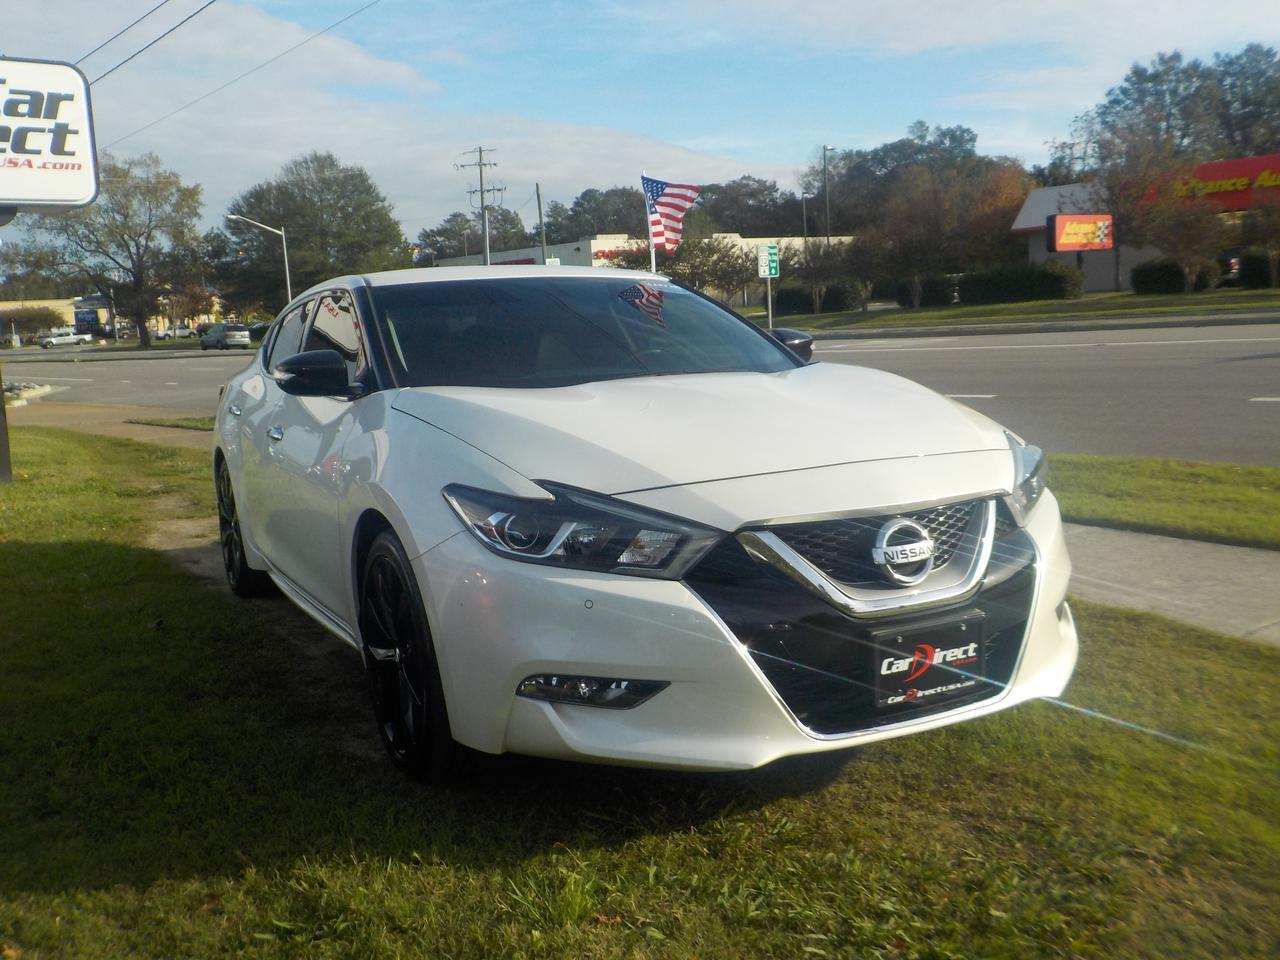 2017 NISSAN MAXIMA SR MIDNIGHT EDITION, NAVIGATION, BLUETOOTH, KEYLESS START, BOSE PREMIUM SOUND, ONLY 22K MILES! Virginia Beach VA